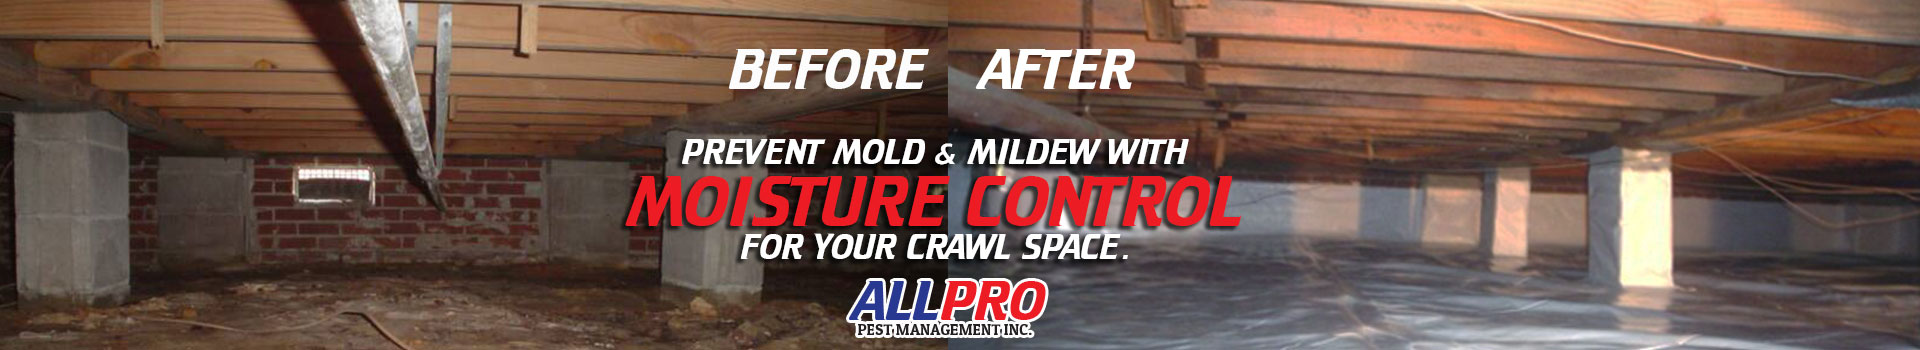 moisture-control-before-after